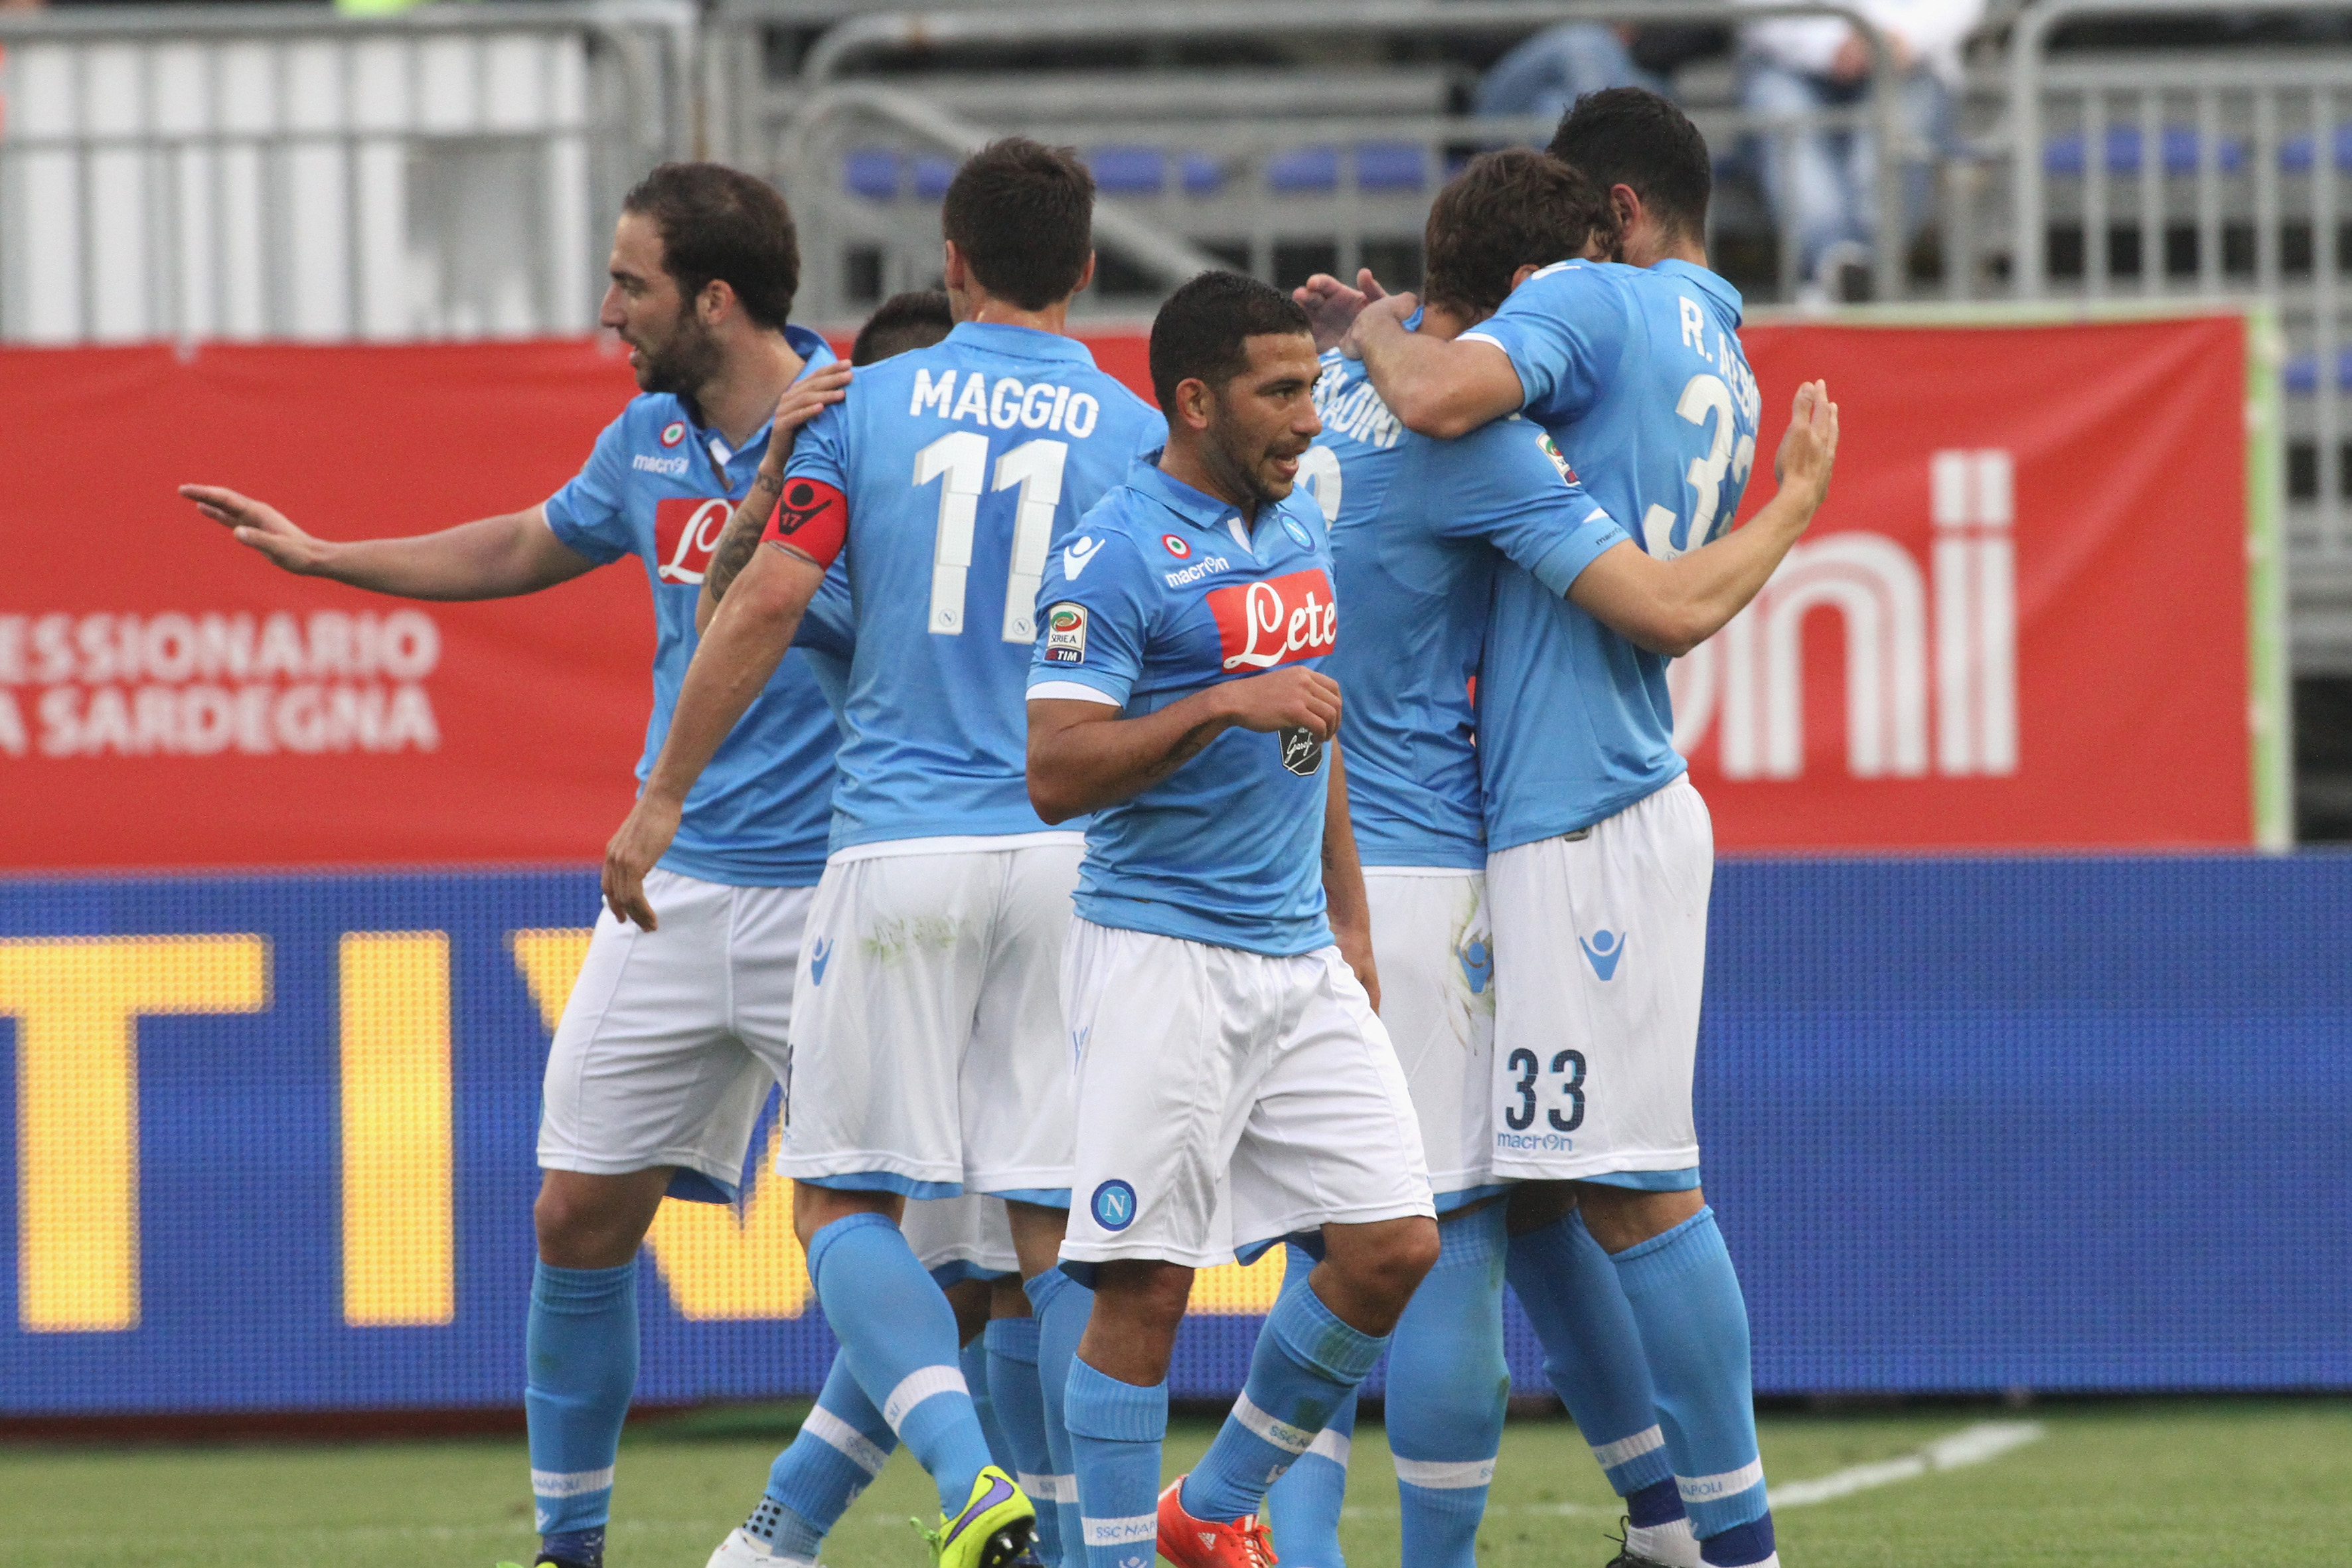 Things look a lot better for Napoli after a recent winning streak